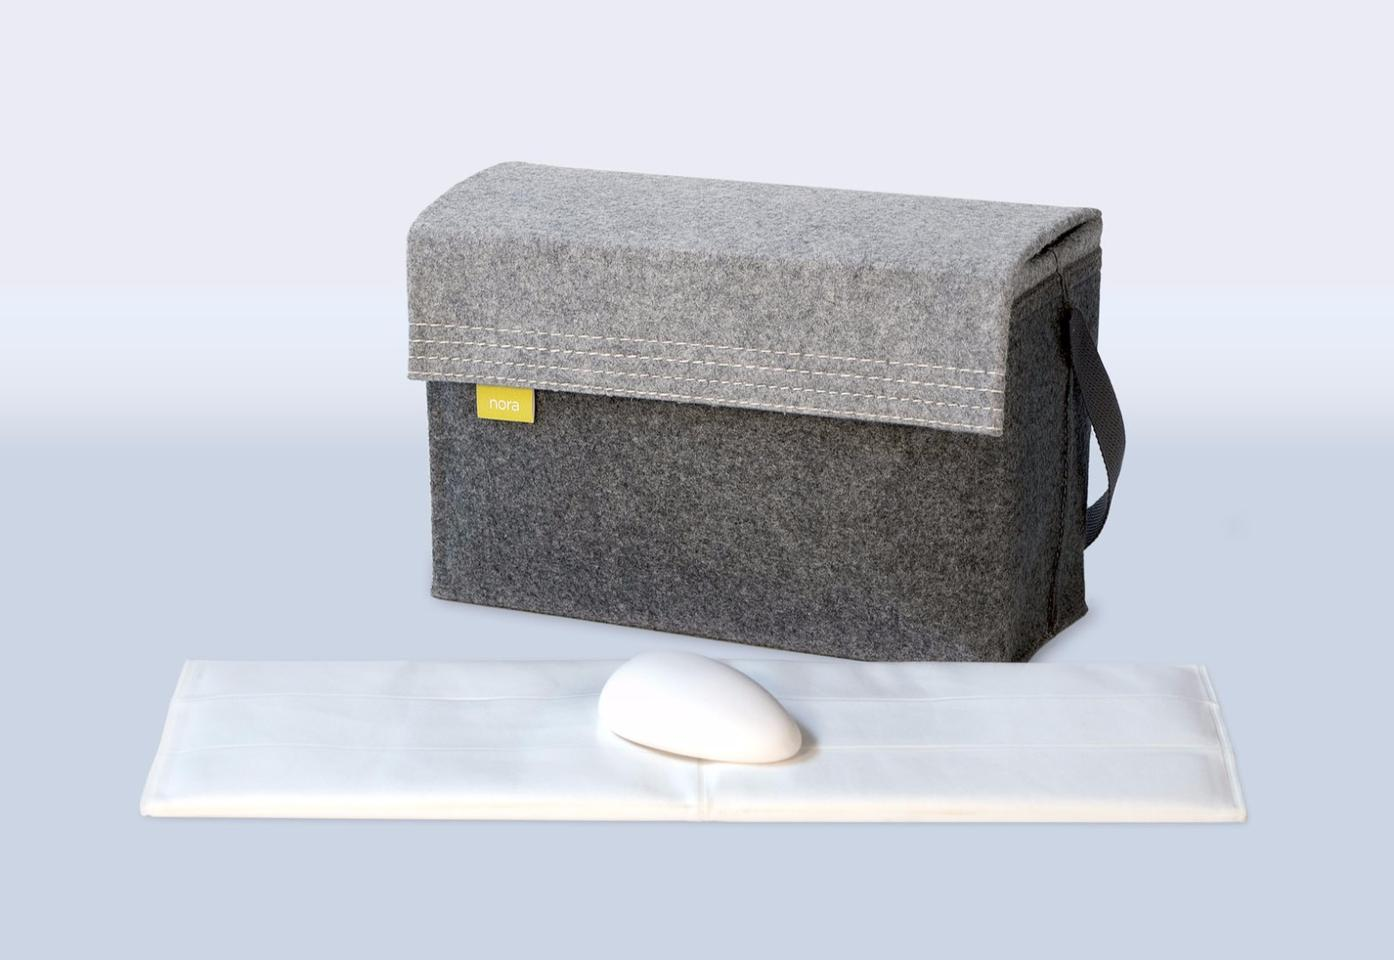 The Nora pump, mic and pillow bladder